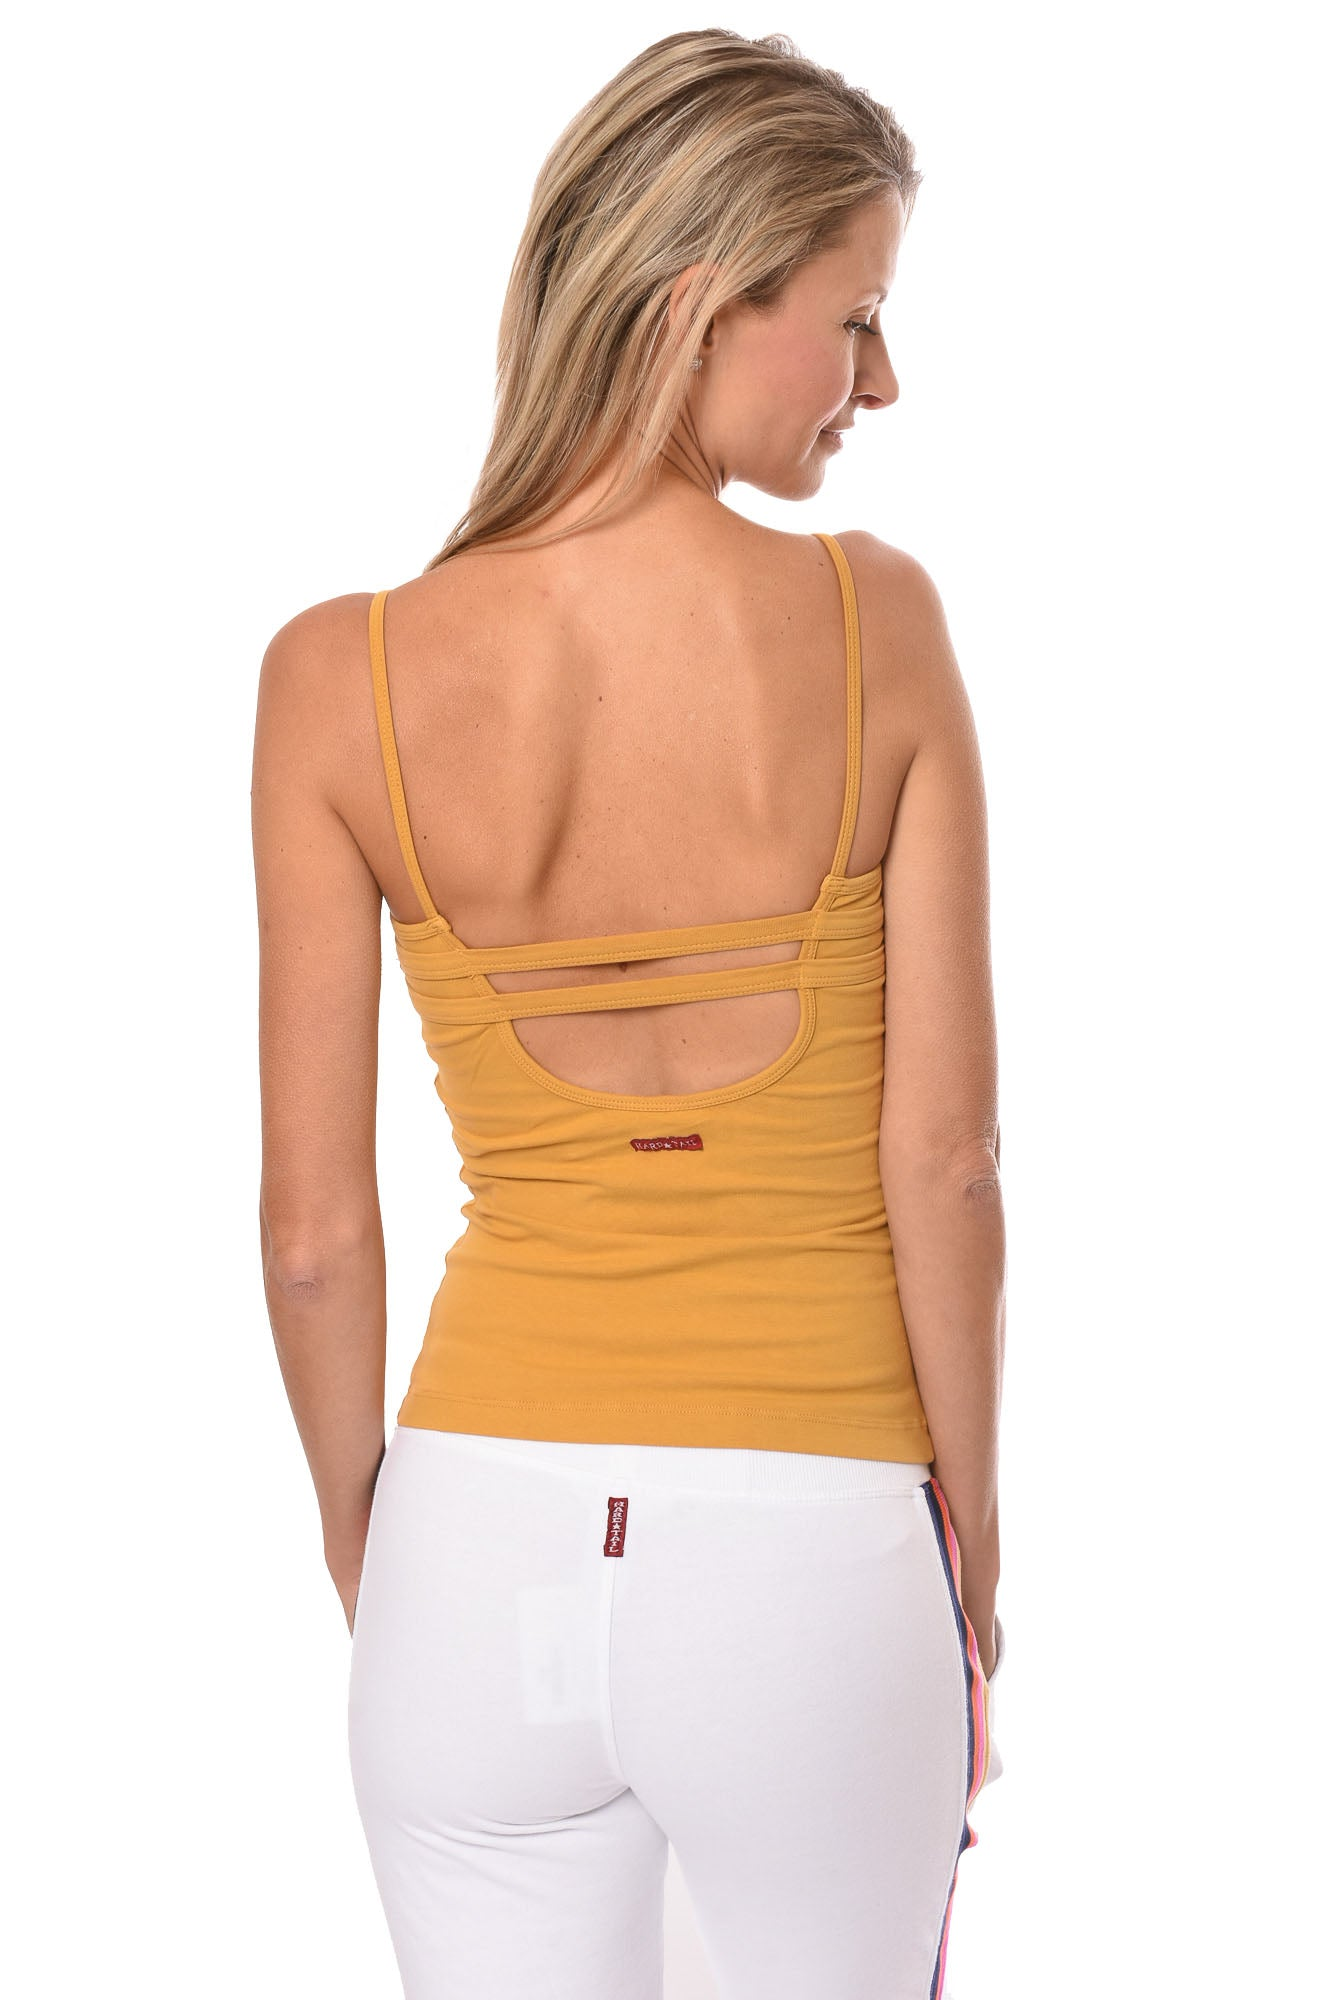 Hard Tail Forever - Strap Back Tank  (W-942, Honey)